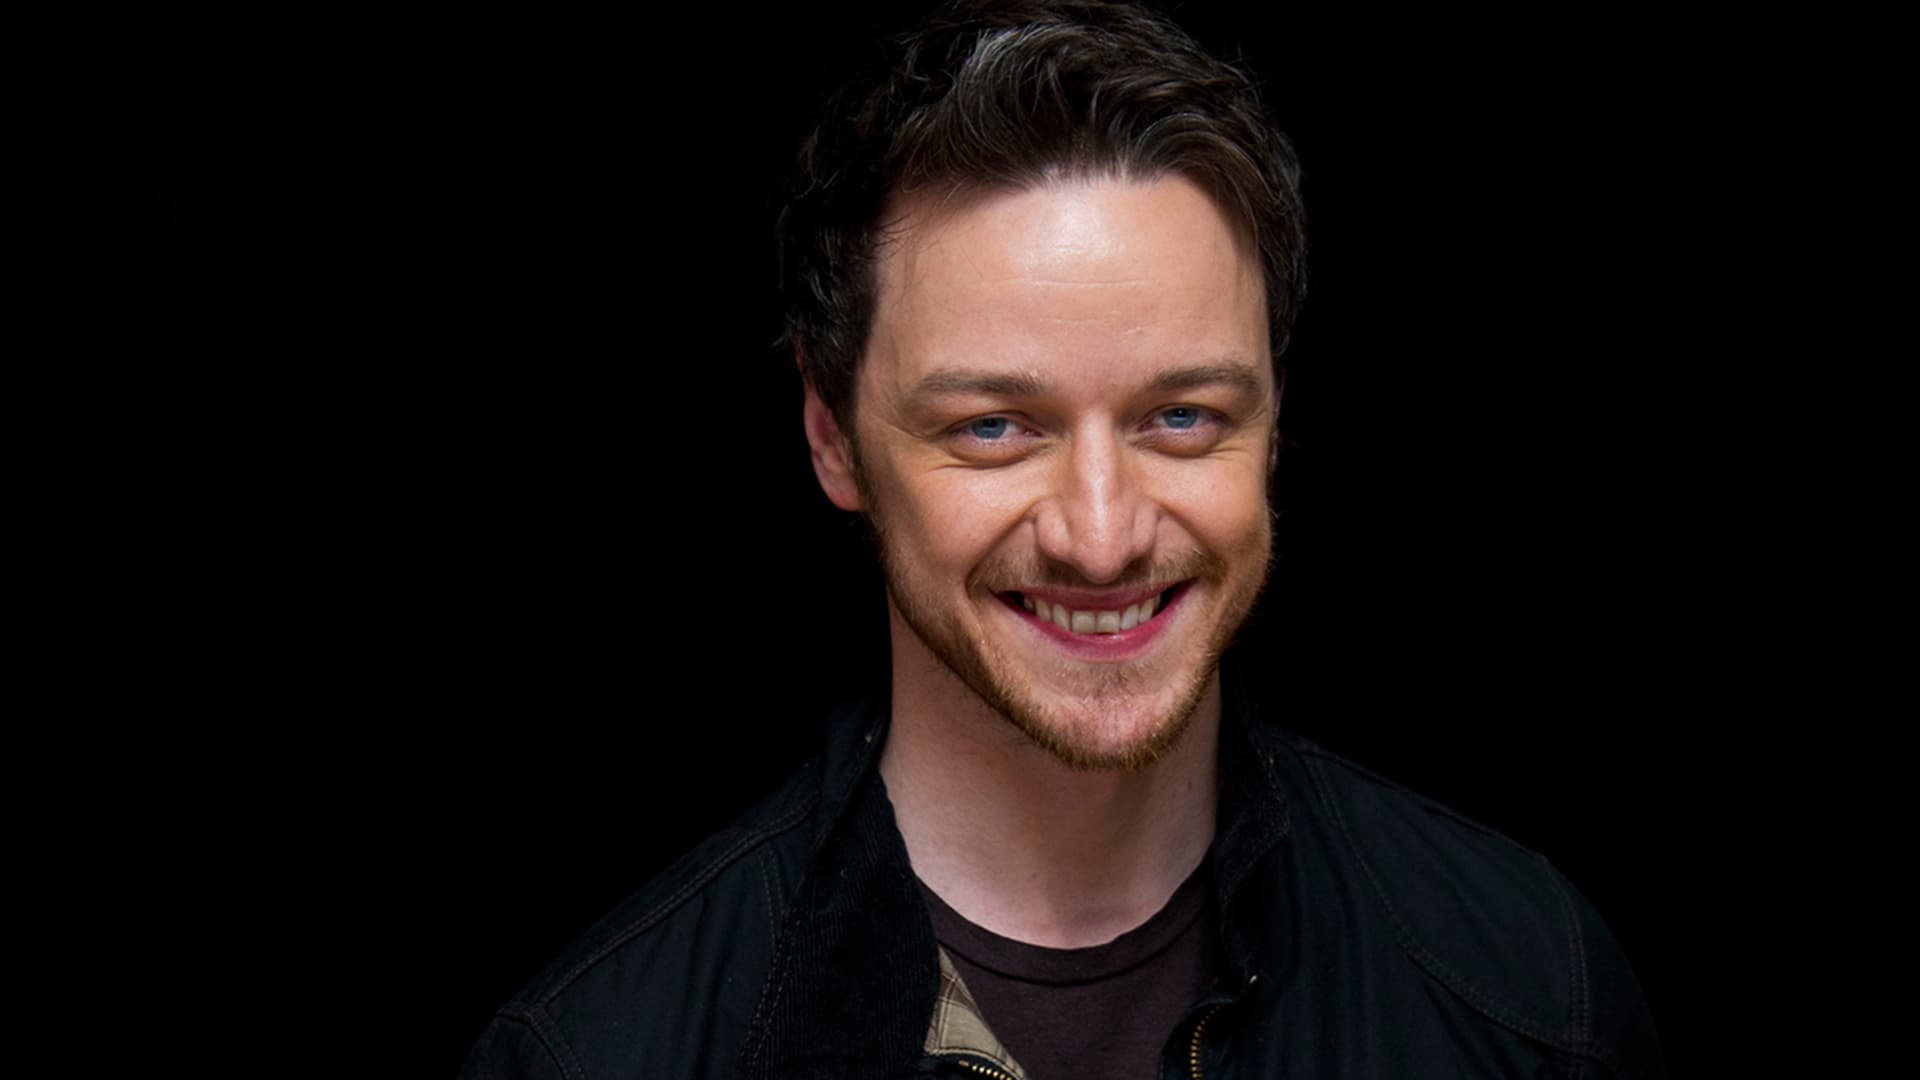 4k Resolution 4k Car Wallpaper 14 James Mcavoy Wallpapers Hd High Quality Download